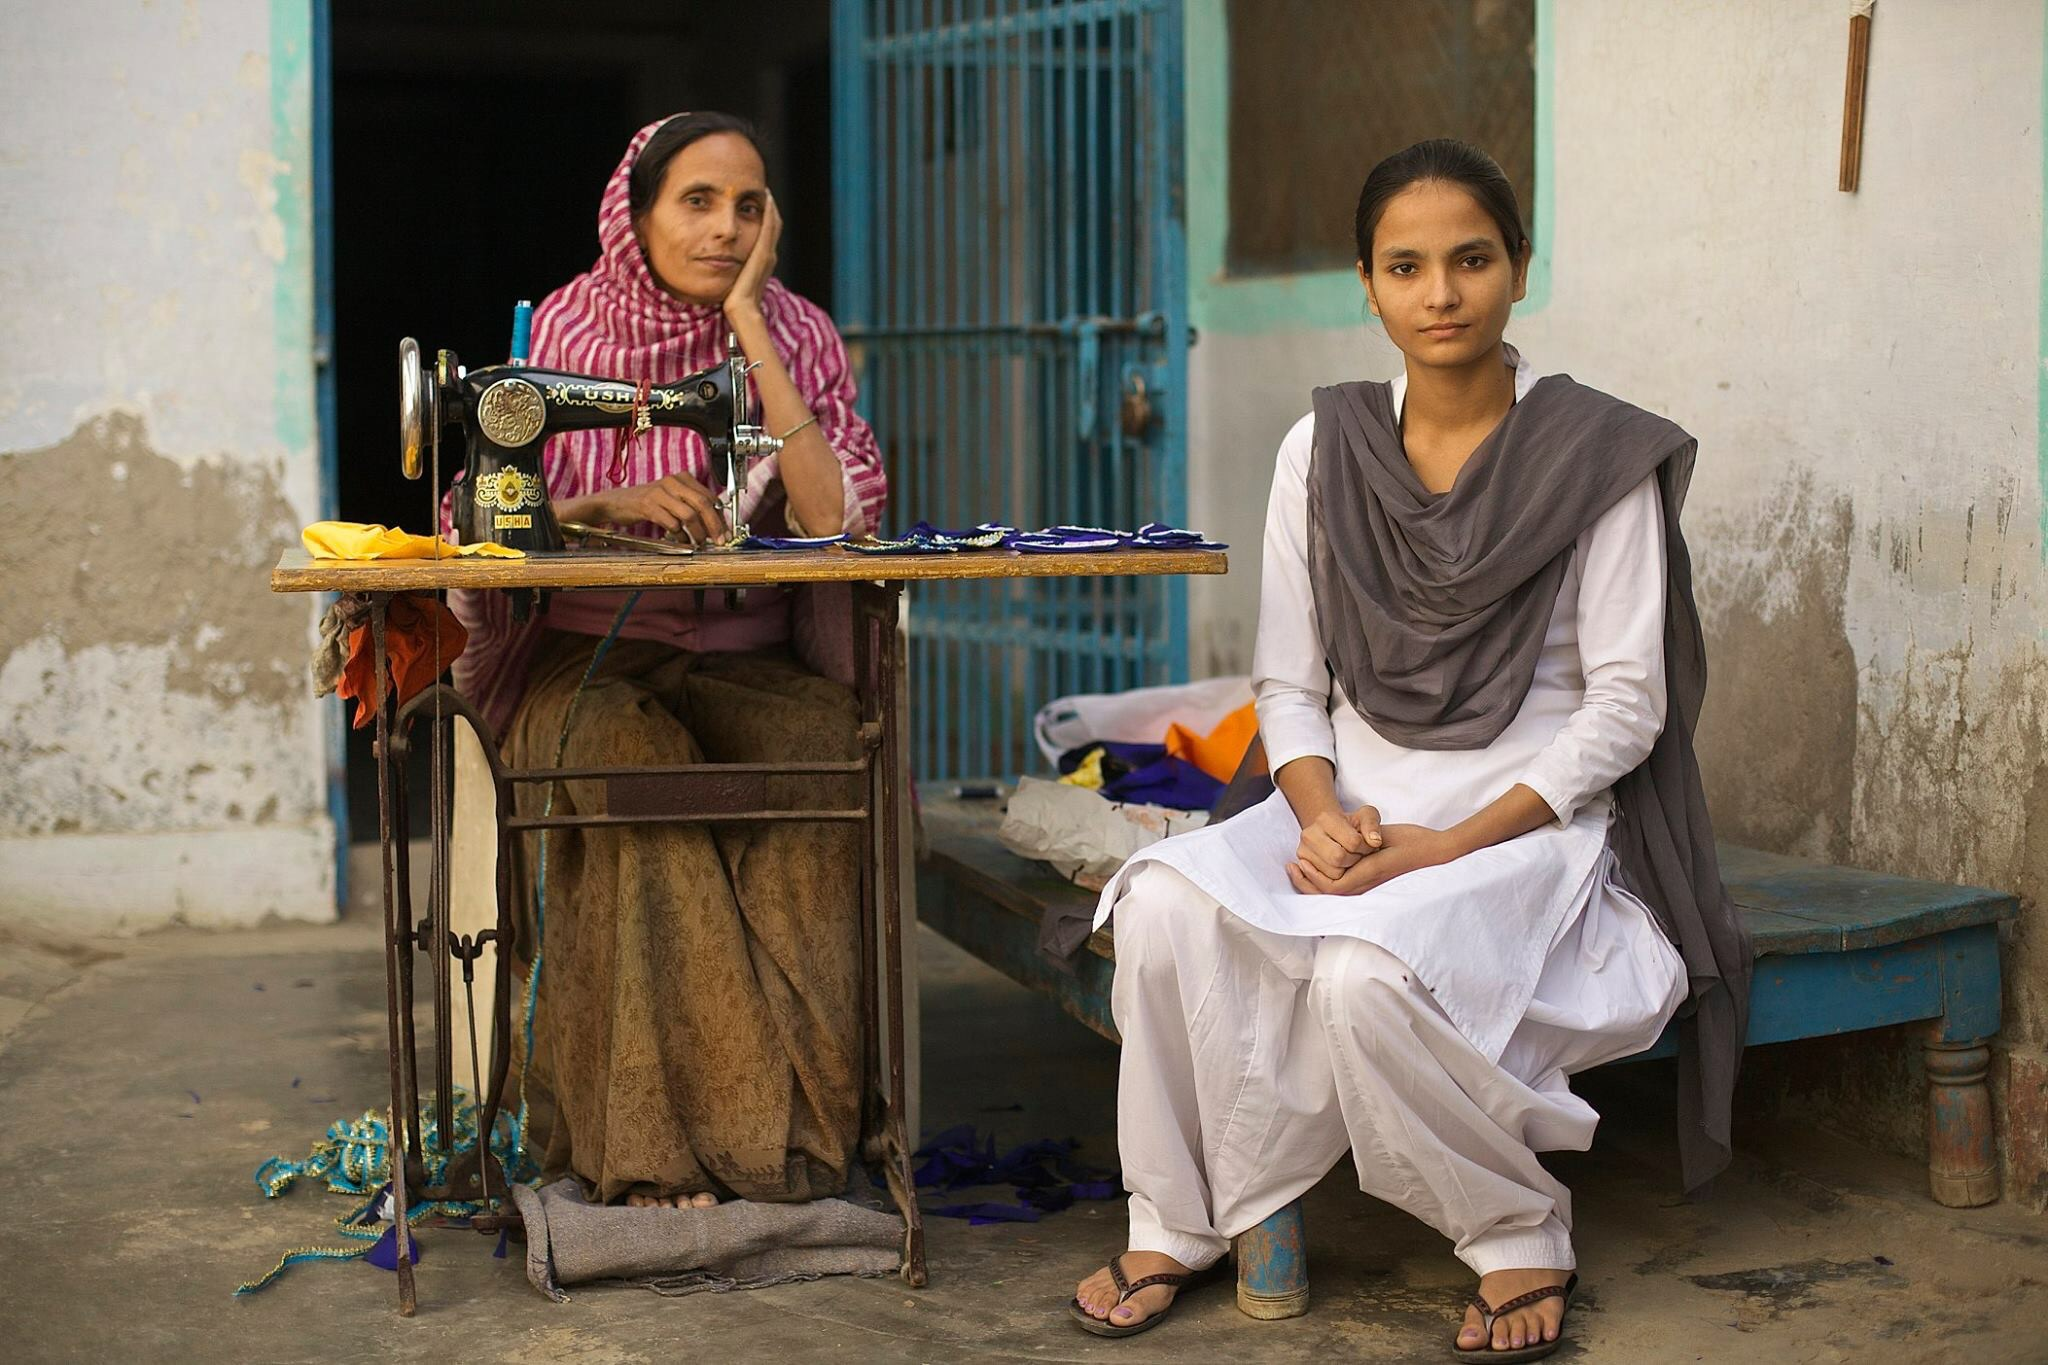 Single mother, Madhu Chaudhary (left) with daughter Mitlesh (right) in college uniform